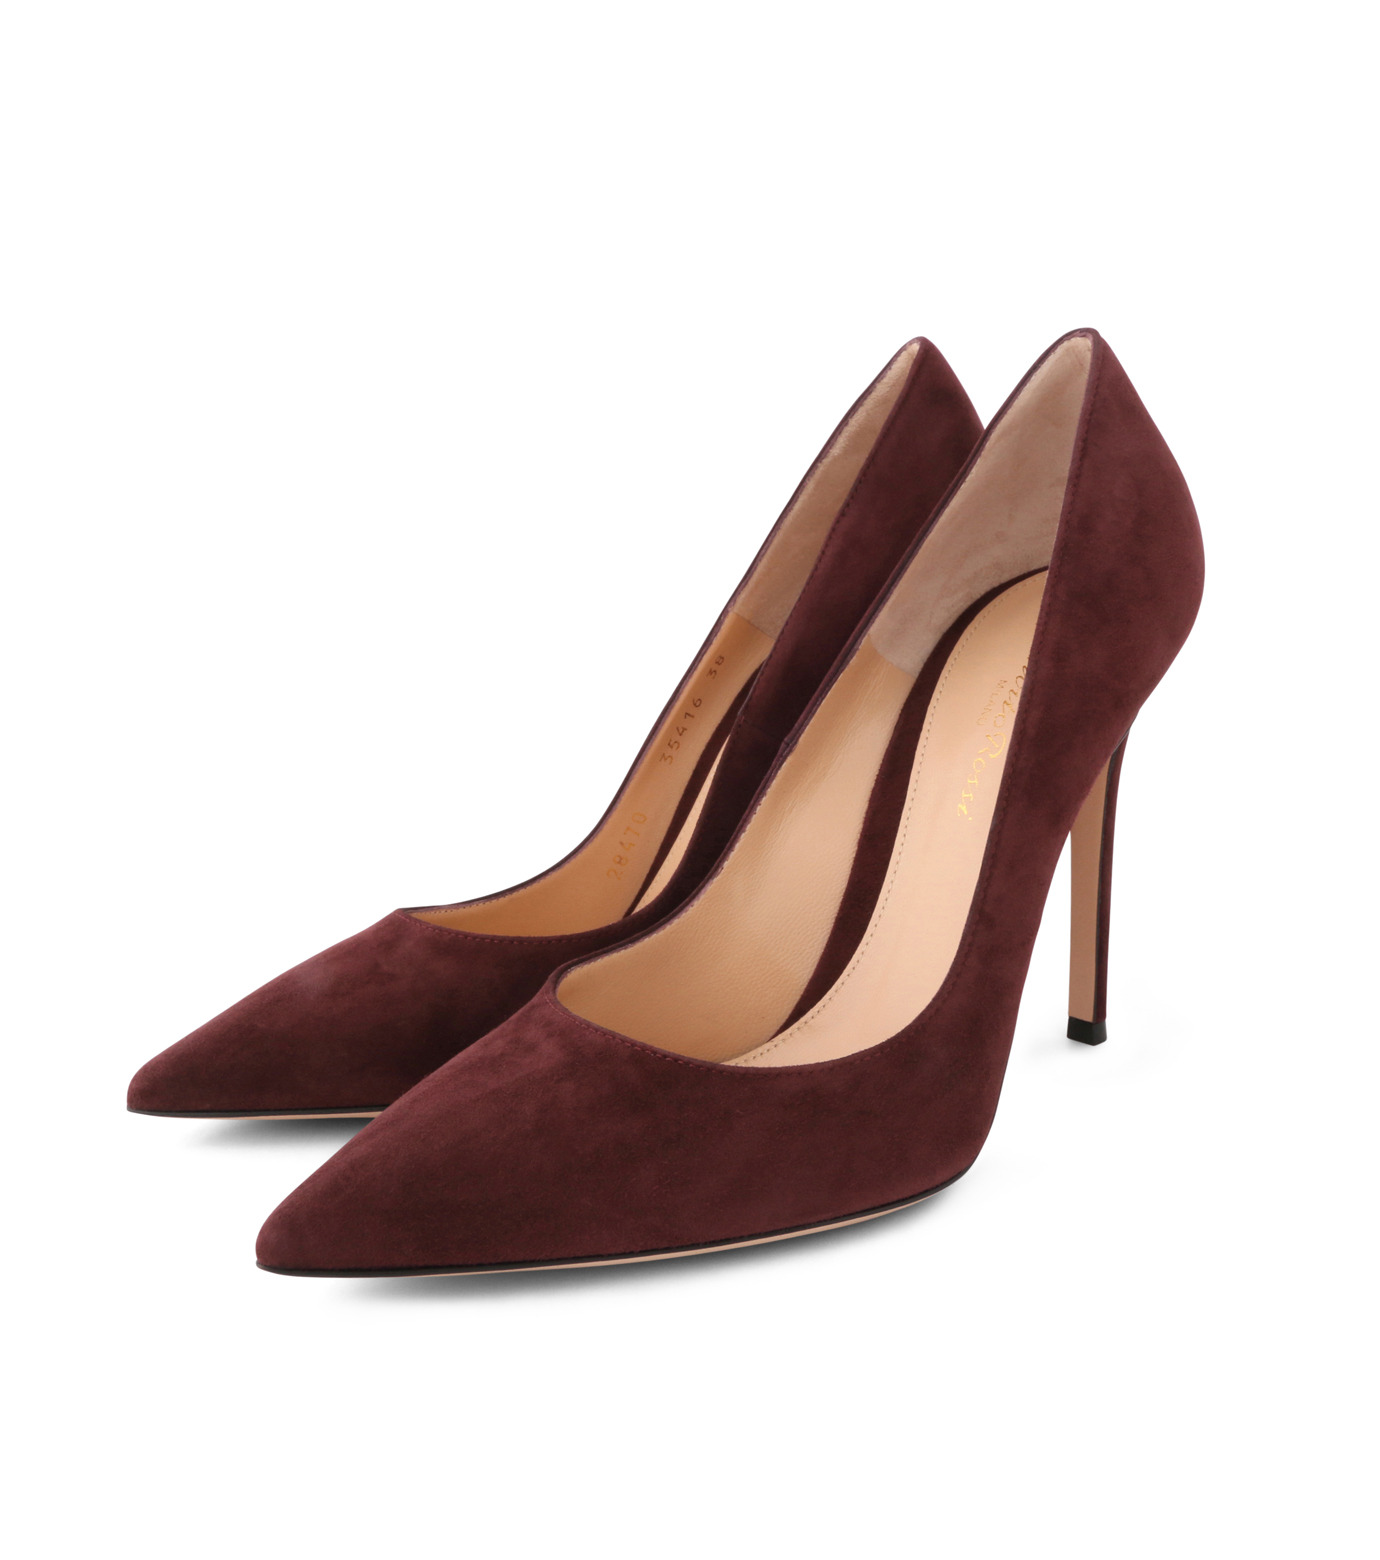 Gianvito Rossi(ジャンヴィト ロッシ)のSuede Pump-BORDEAUX(パンプス/pumps)-G28470-63 拡大詳細画像3